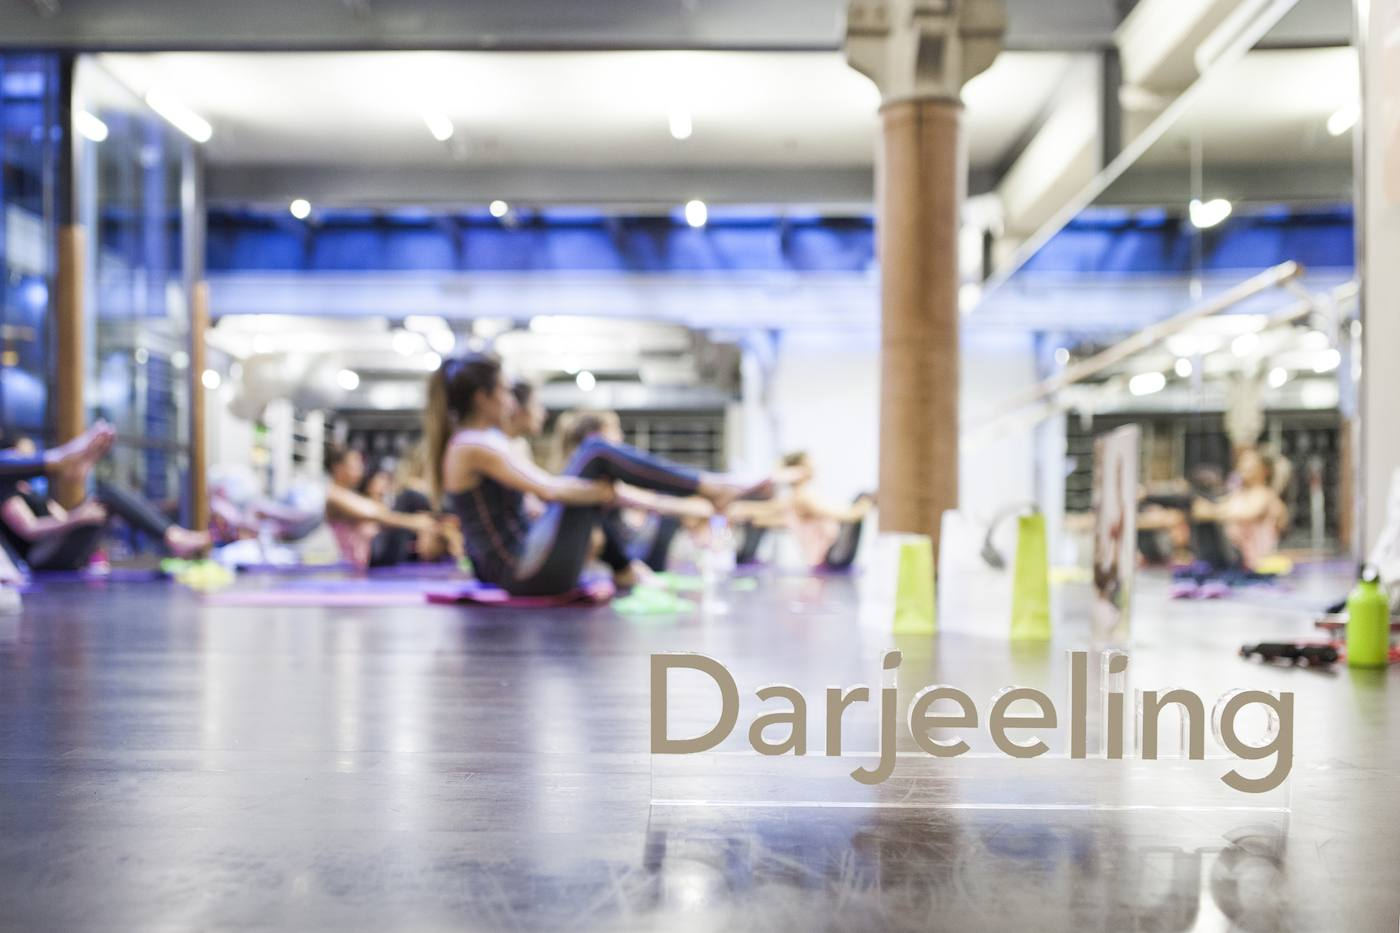 one-day-in-paris-pilates-fusion-with-darjeeling-nolwenn-c-10